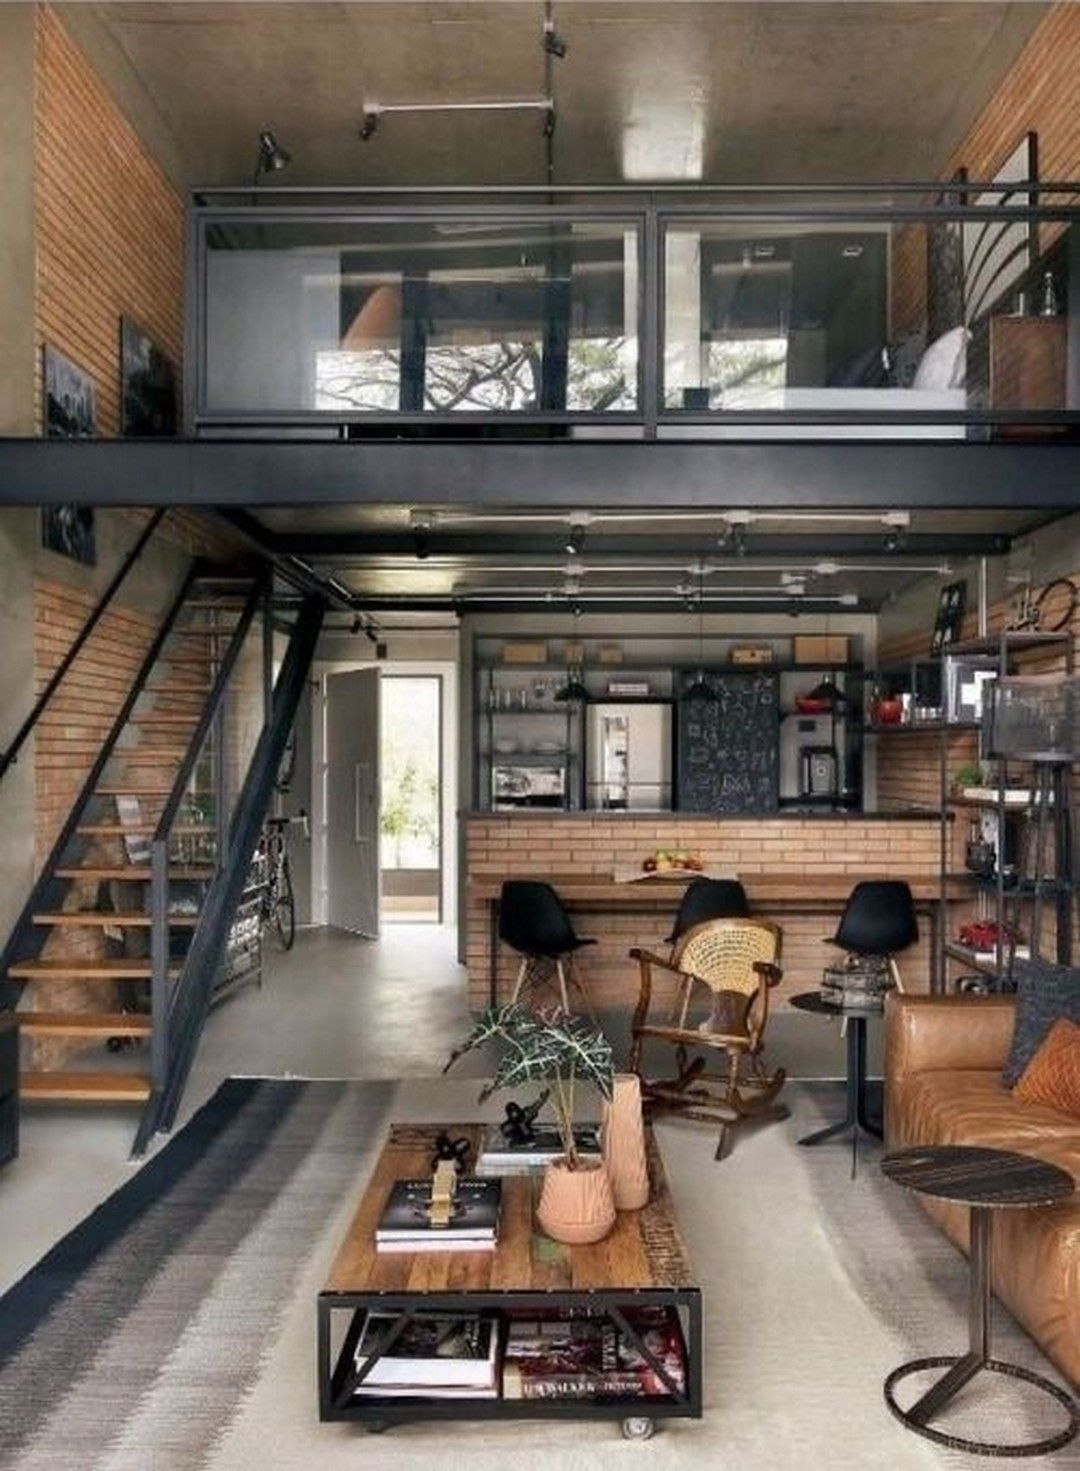 Awesome Industrial Farmhouse Design Ideas To Complement Your Home In 2019 Indus Awesome Comp In 2020 Tiny House Interior Design Tiny House Design Farmhouse Design